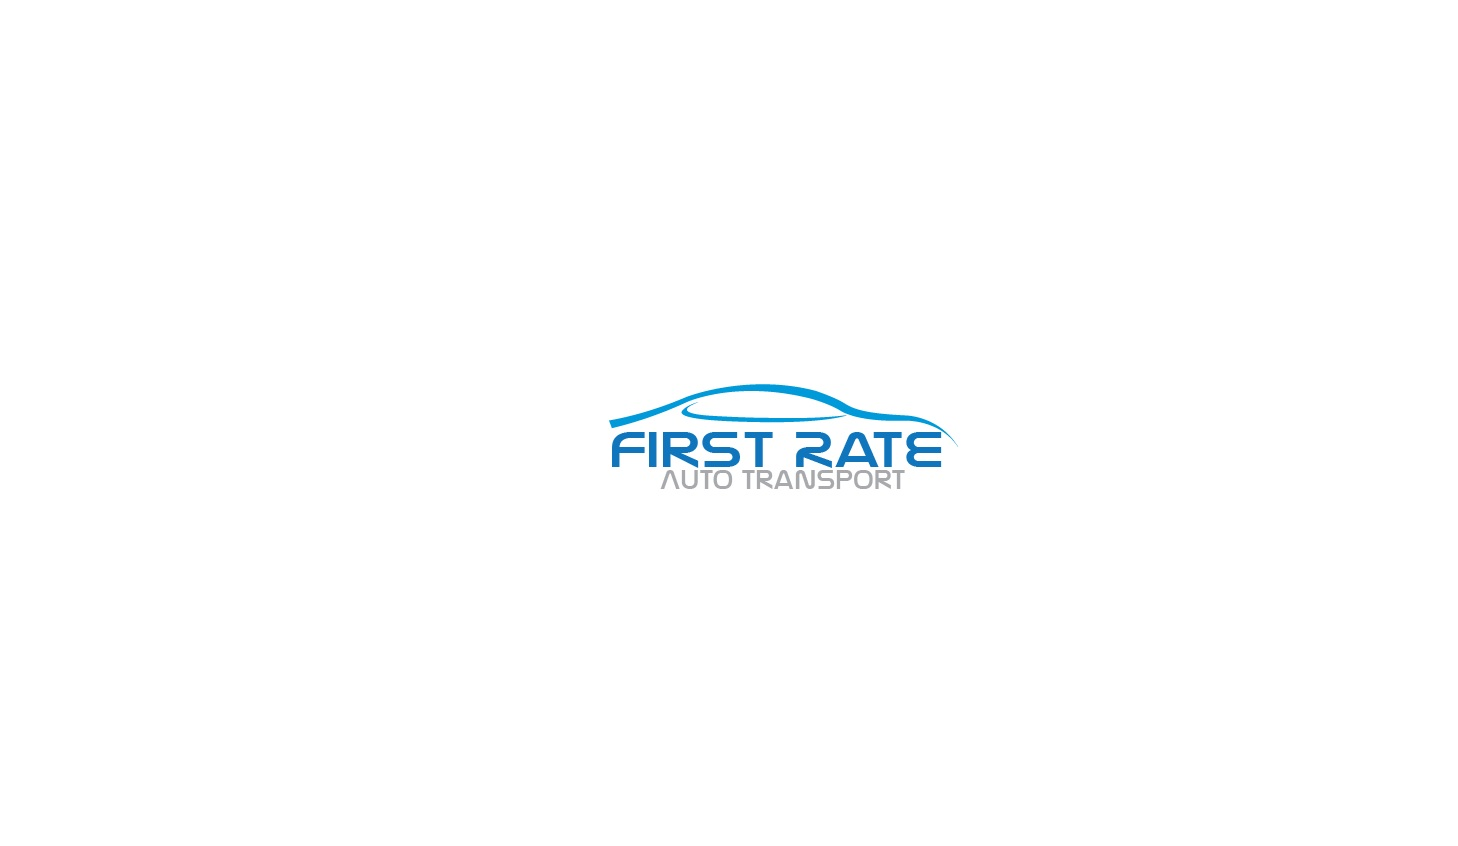 Serious Masculine It Company Logo Design For First Rate Auto